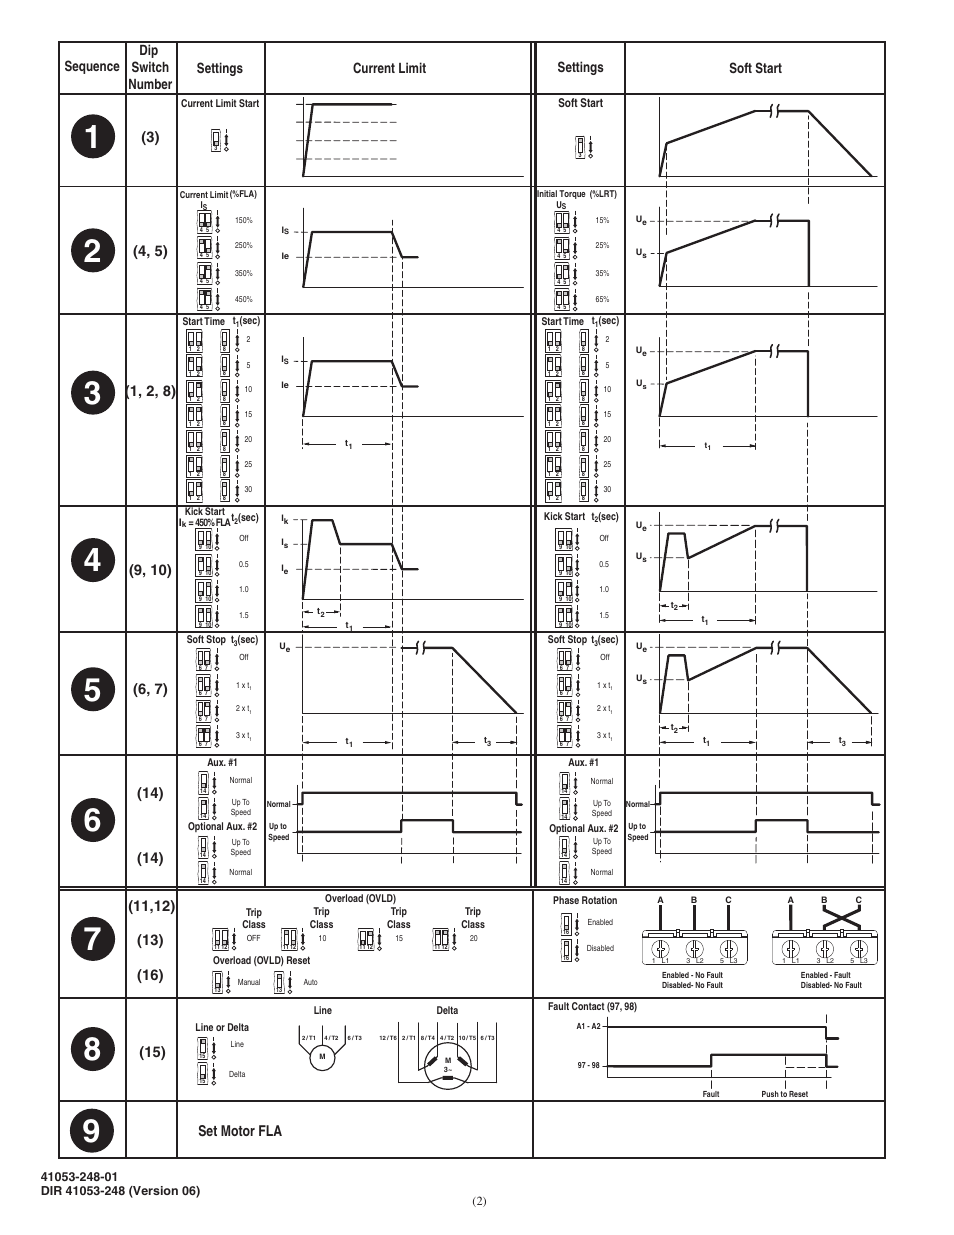 Smc Sv3300 Wiring Diagram Manual Of Manifold Trusted Diagrams Rh Wiringhubme Today